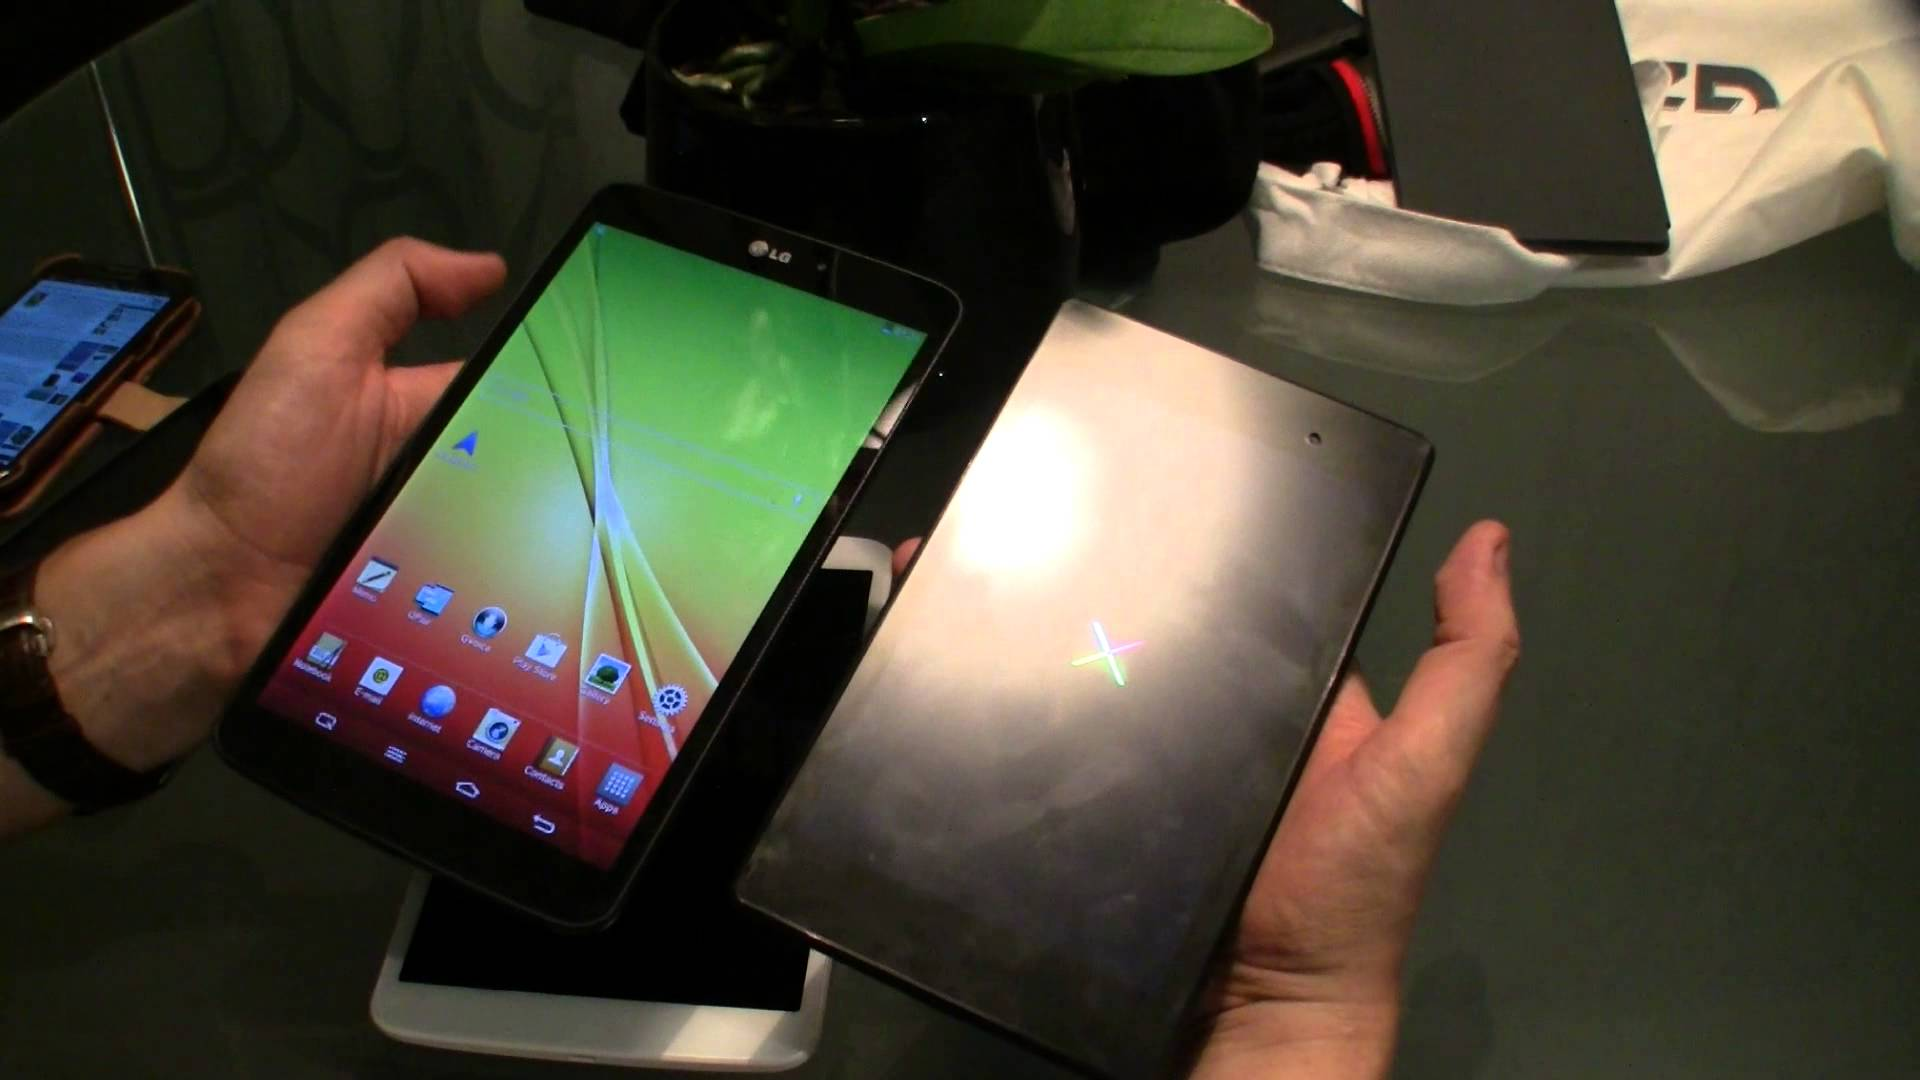 LG G Pad vs Nexus 7 vs iPad mini